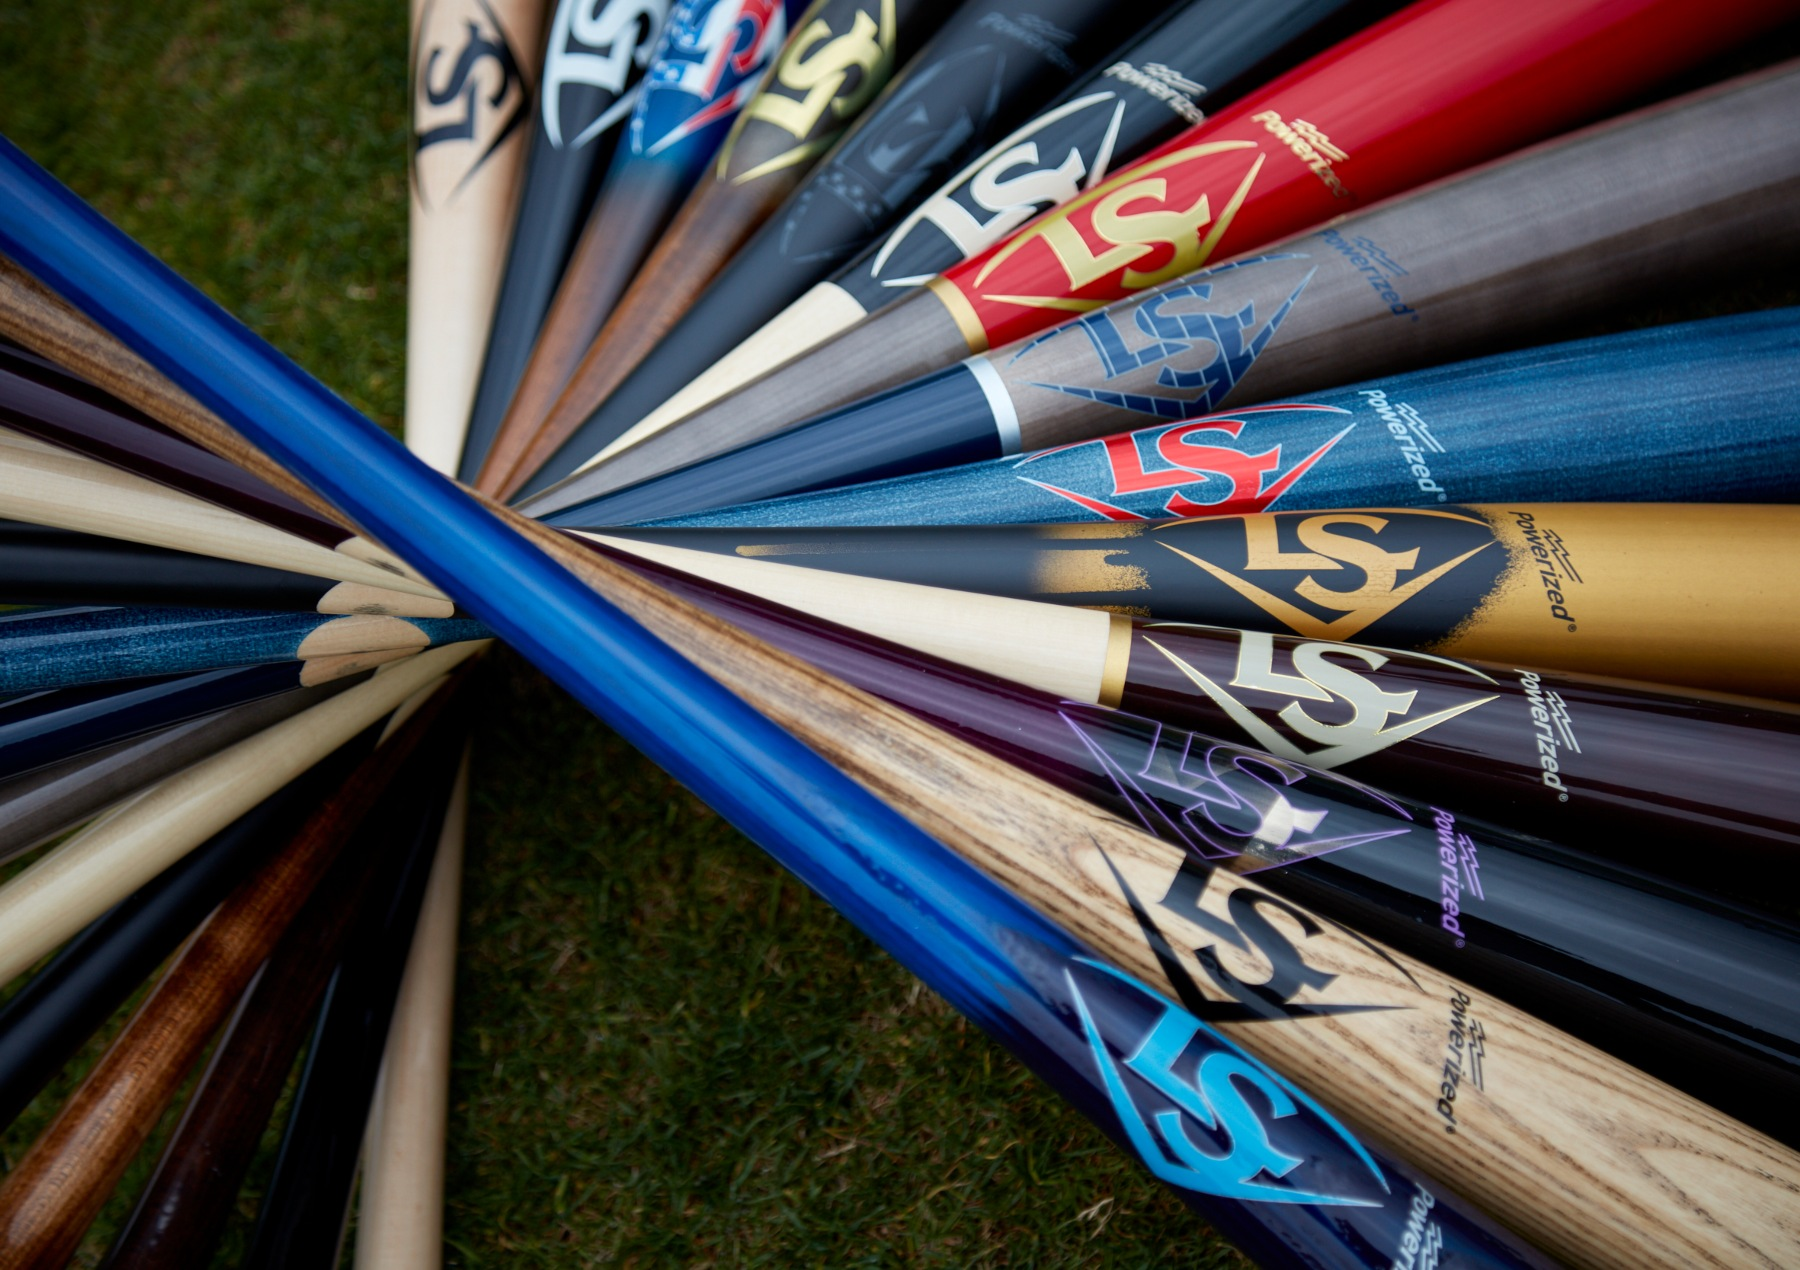 Louisville Slugger's New Coating Creates Hardest MLB Prime Wood Bat Yet